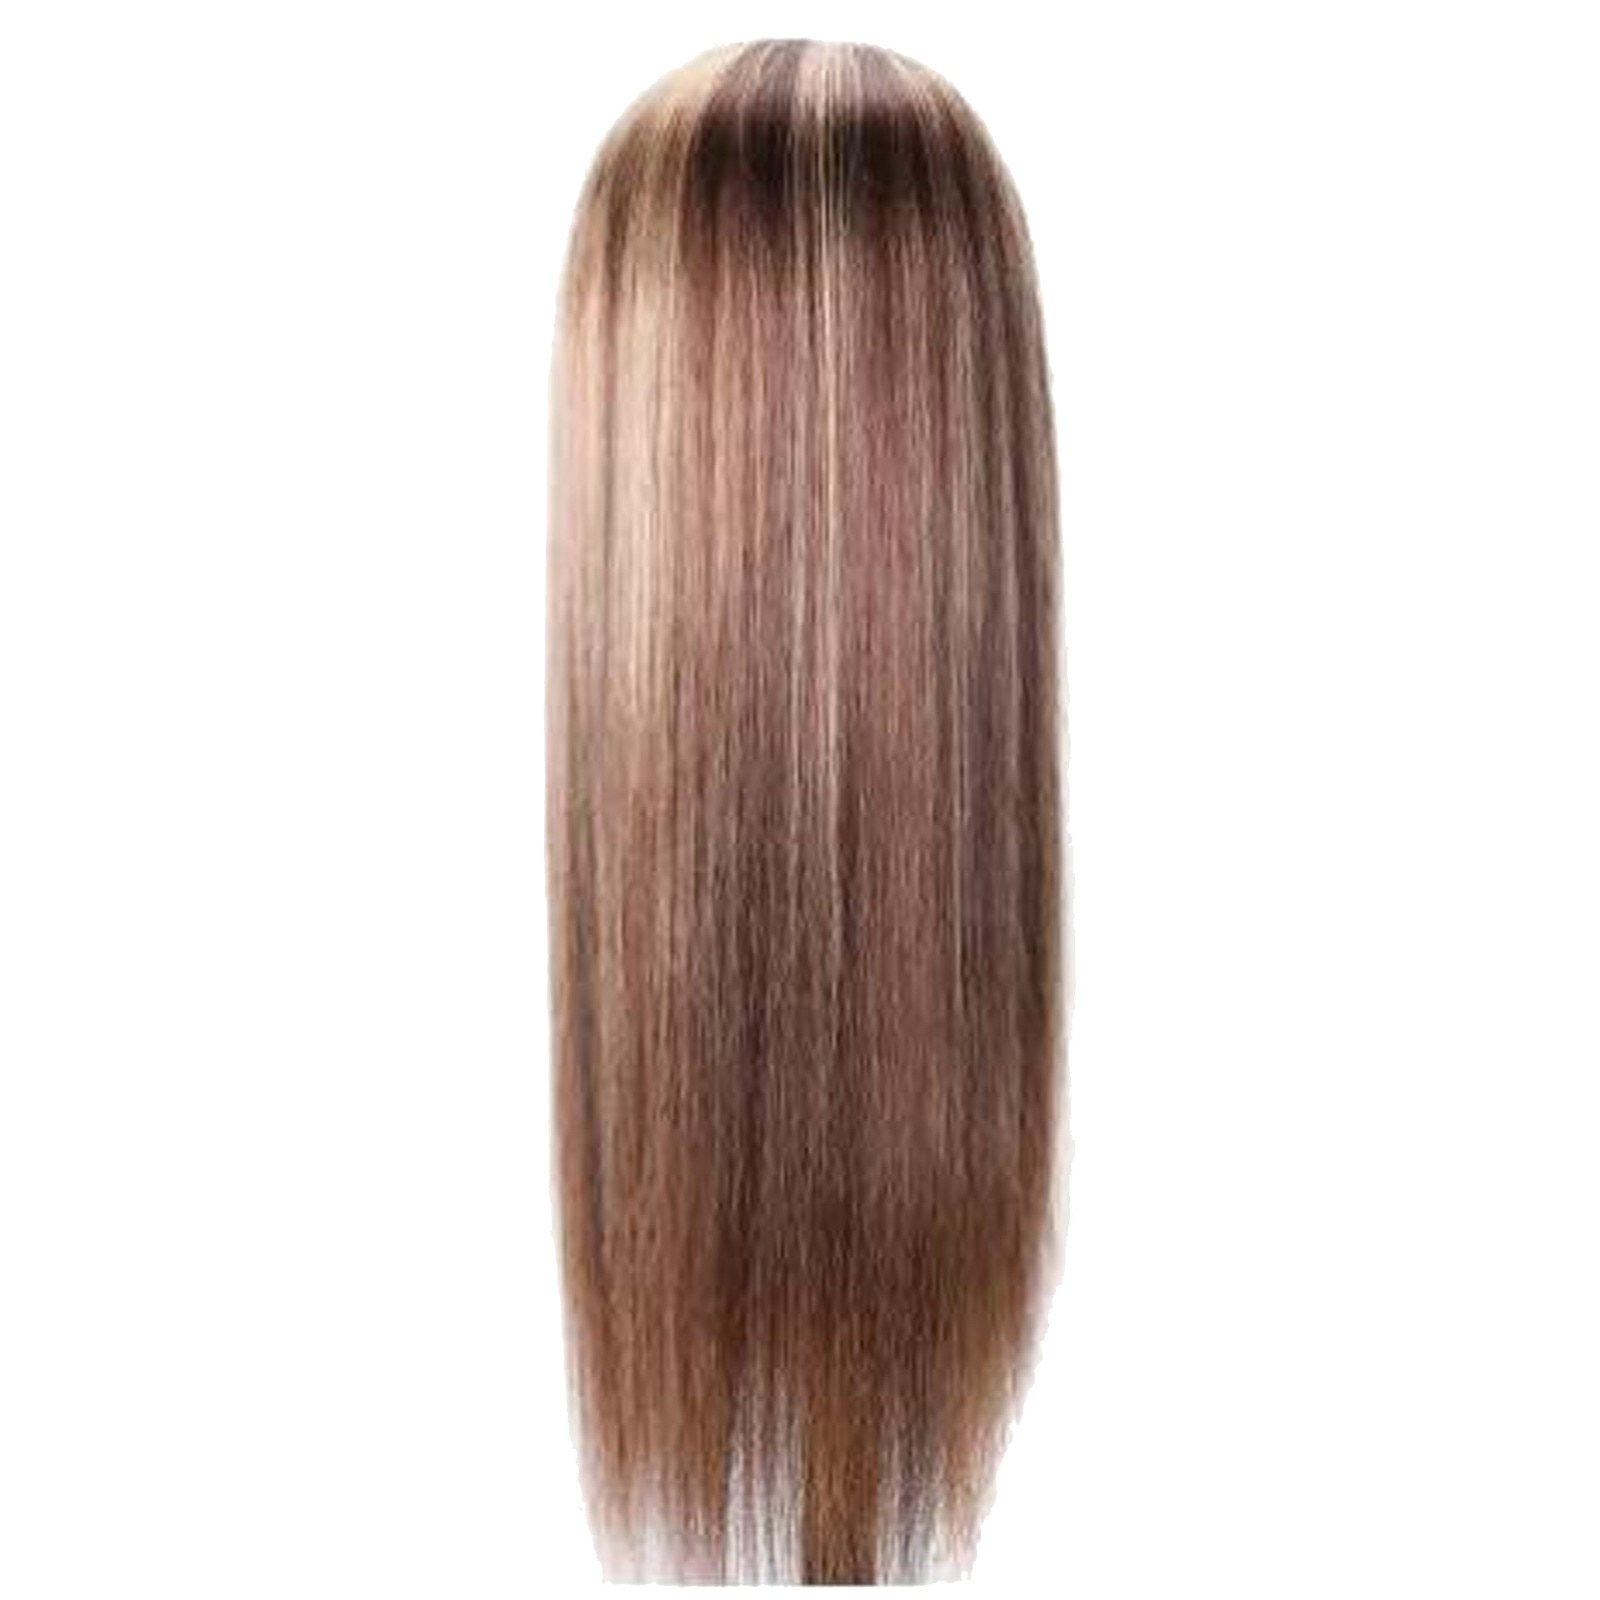 12-24 Inches stylish Long Straight Brown Mixed Blonde Synthetic party Wigs for Women Middle Part Hig